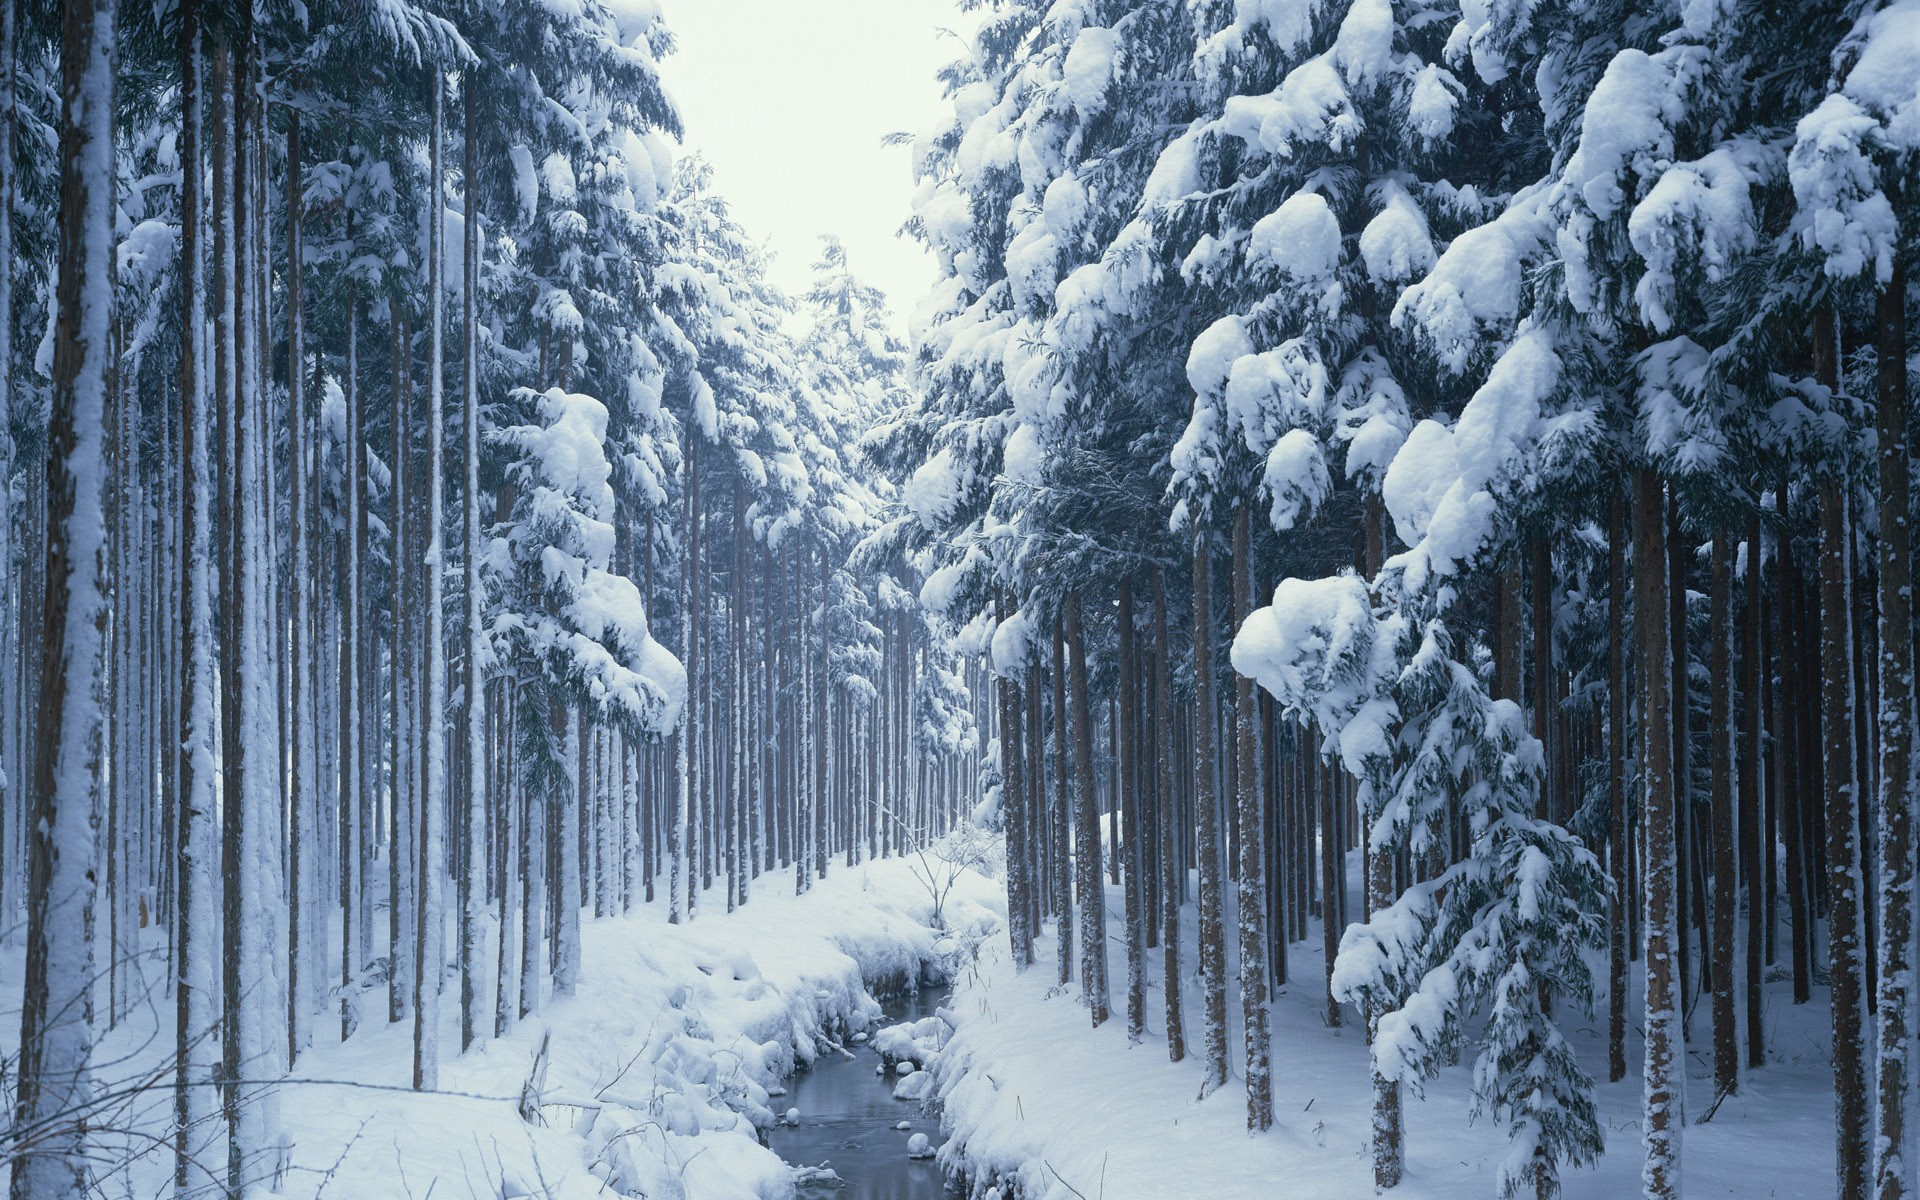 snow-forest-wallpaper-11484119.jpg